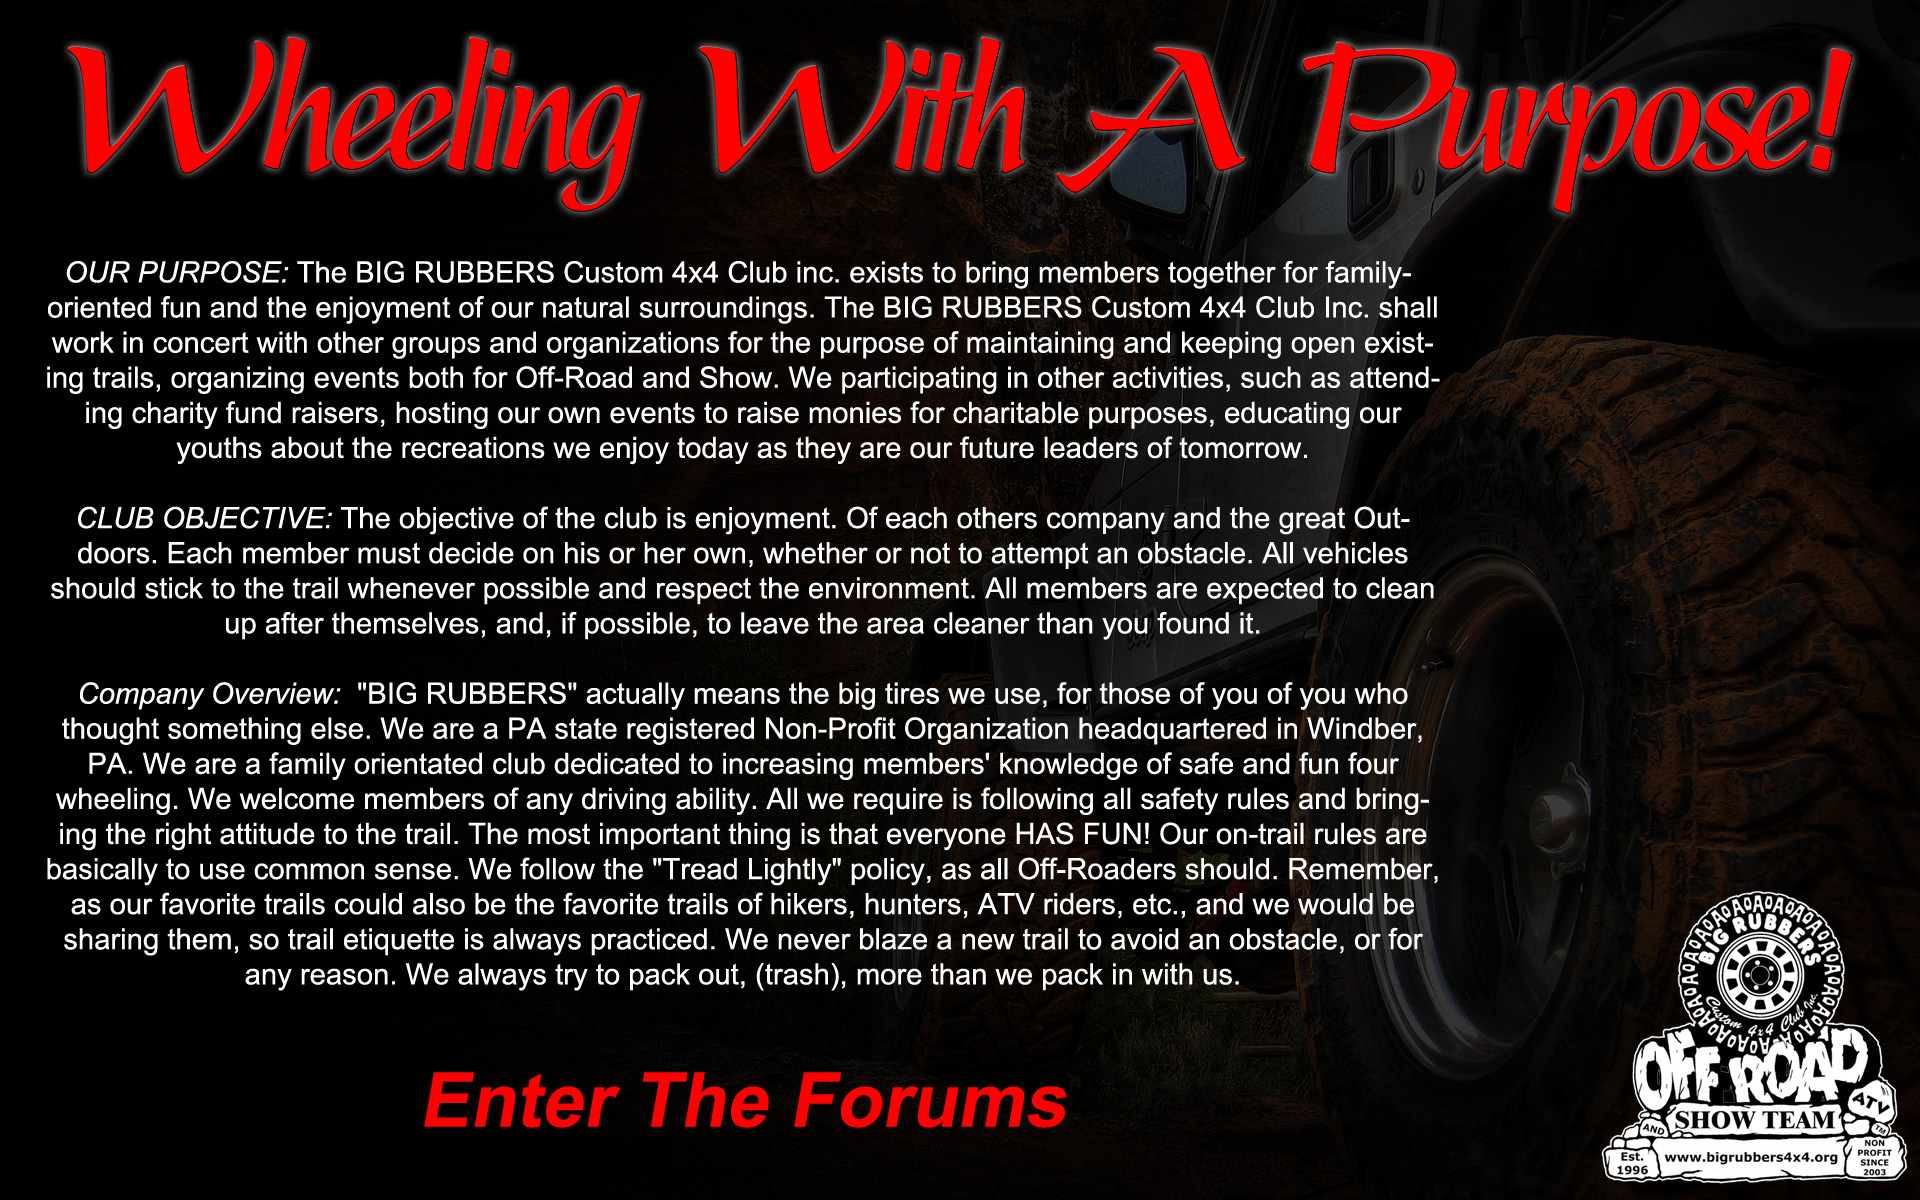 Enter the Forums